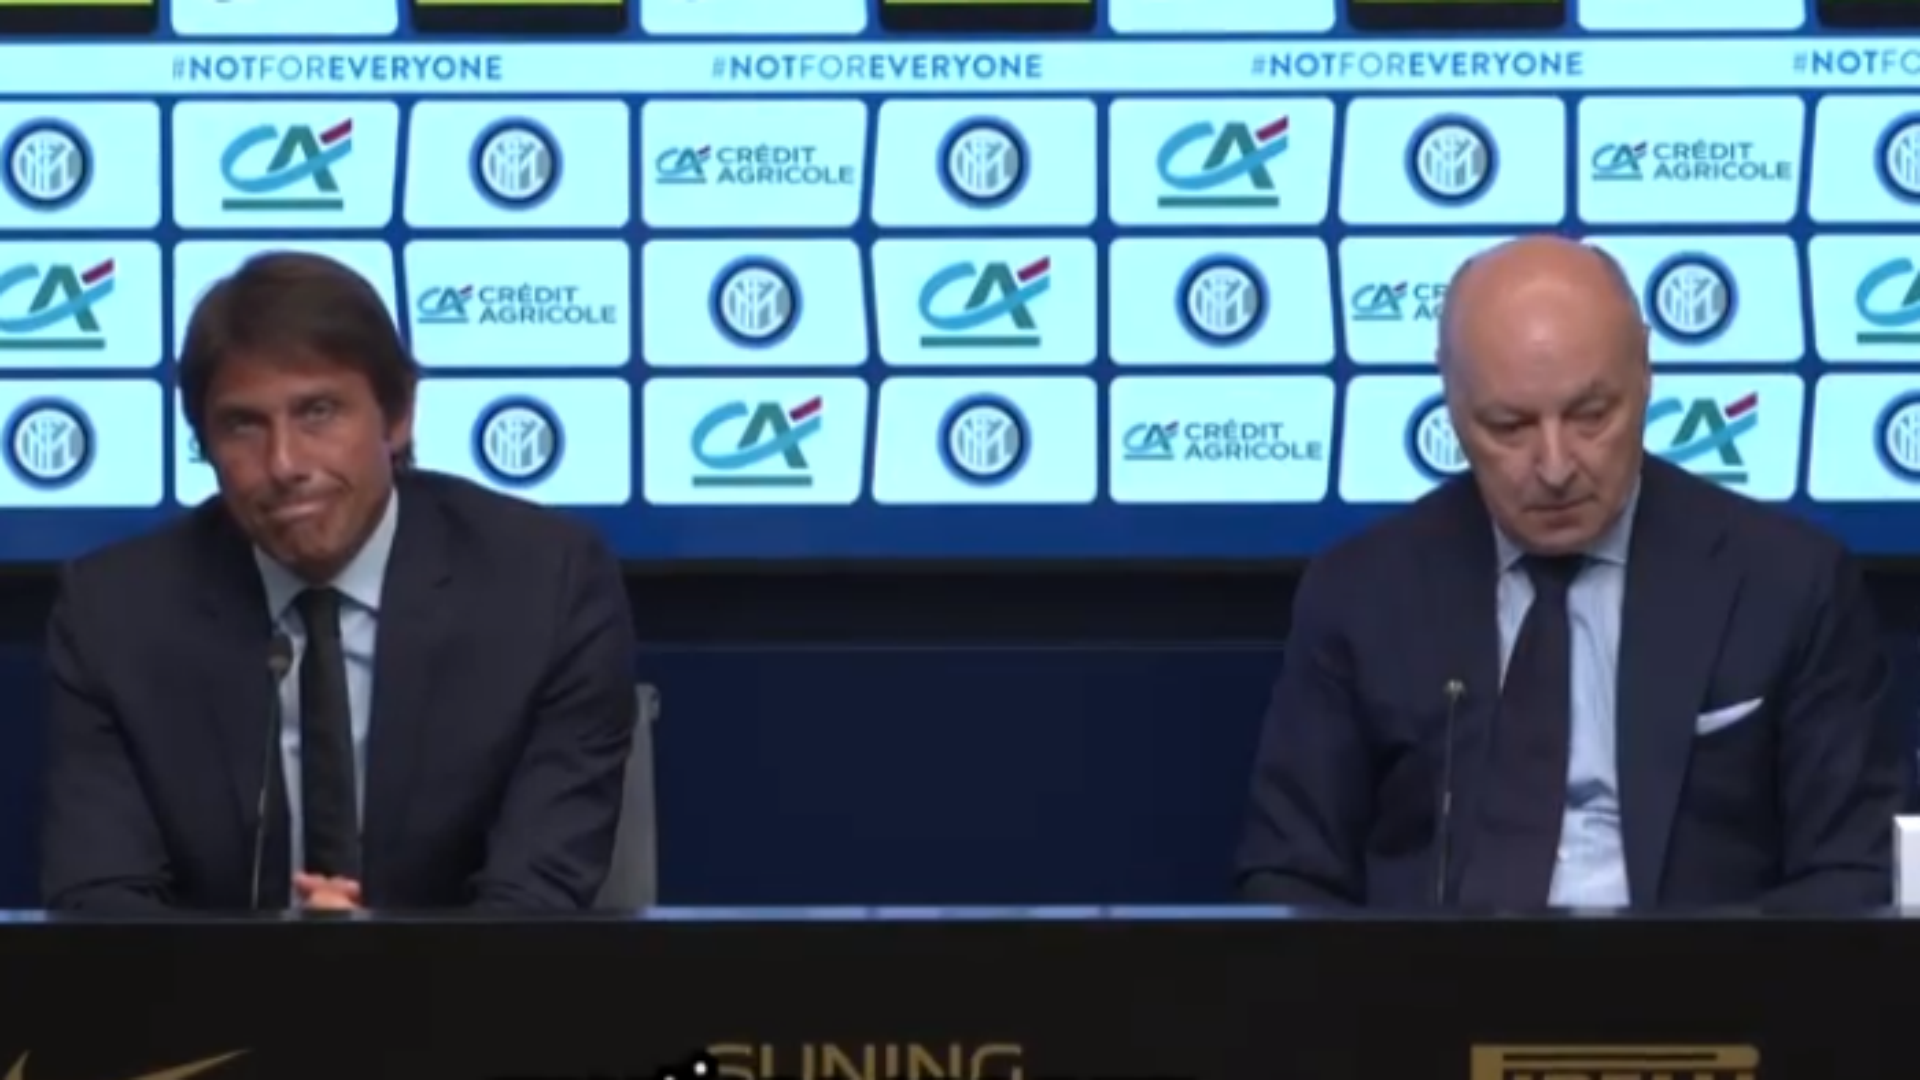 Inter, Conte e Marotta in conferenza: